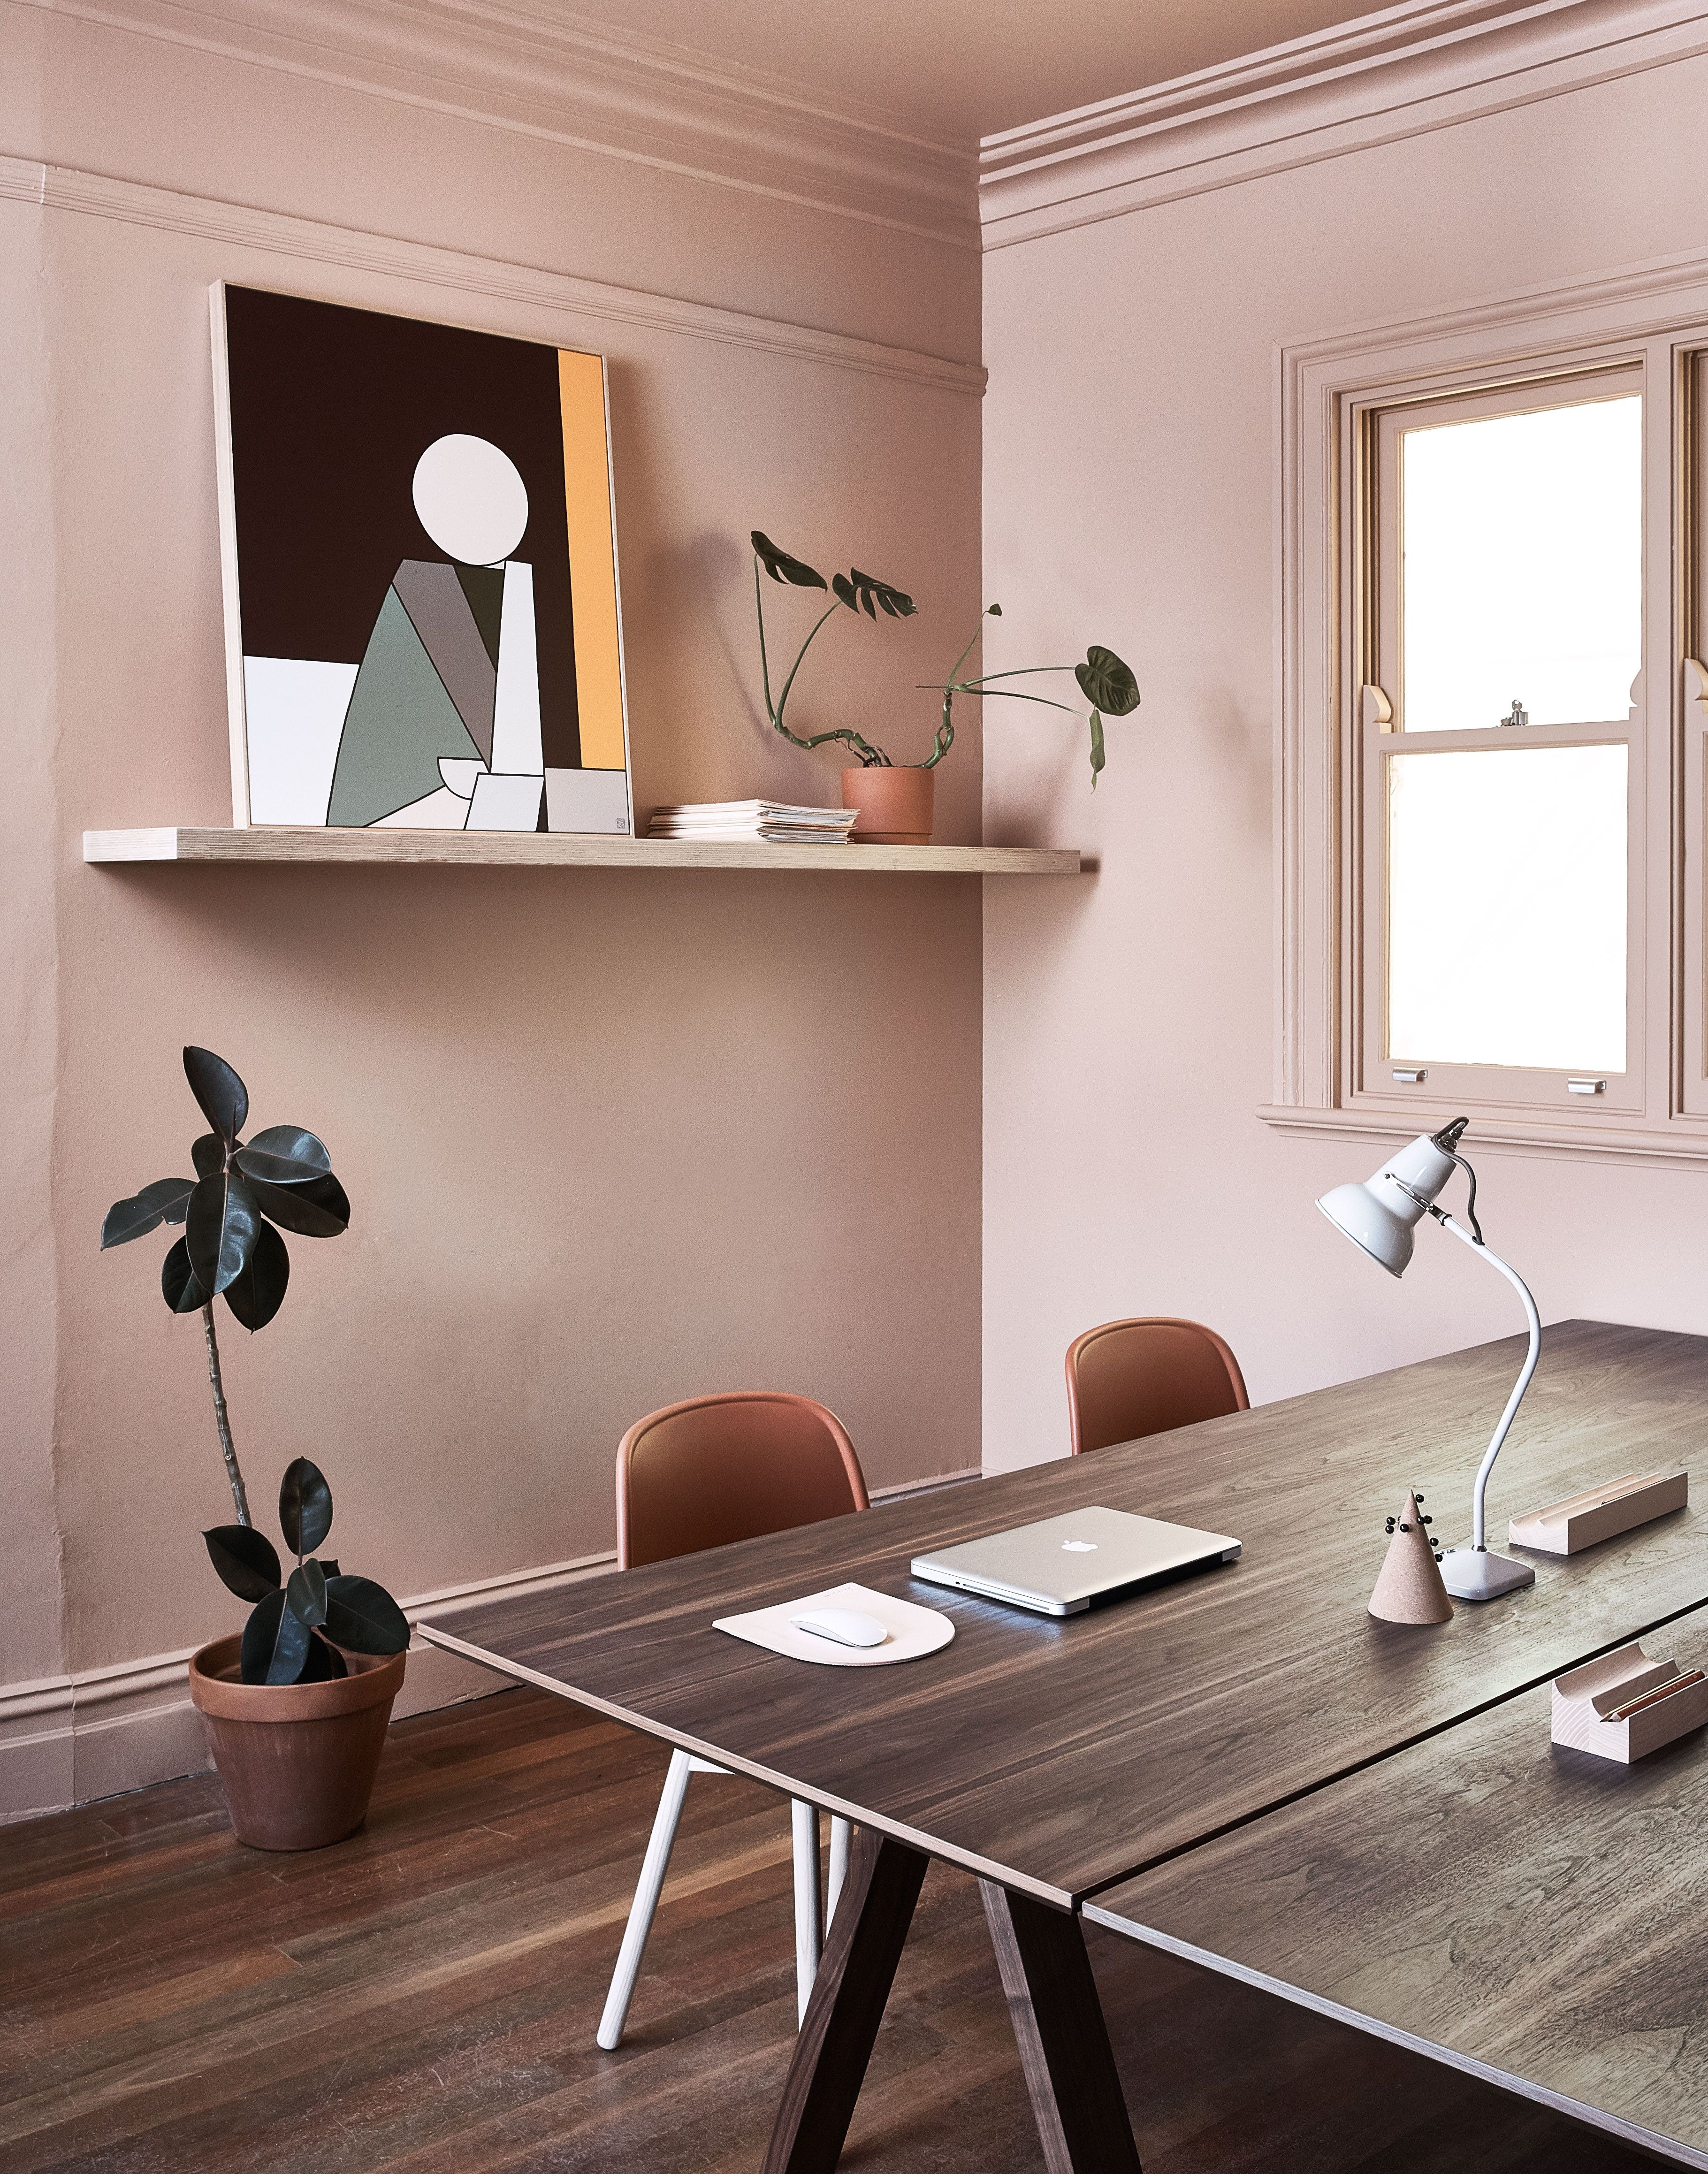 Interior design firm we are triibes surry hills office features dusty pink walls contemporary furniture and indoor greenery